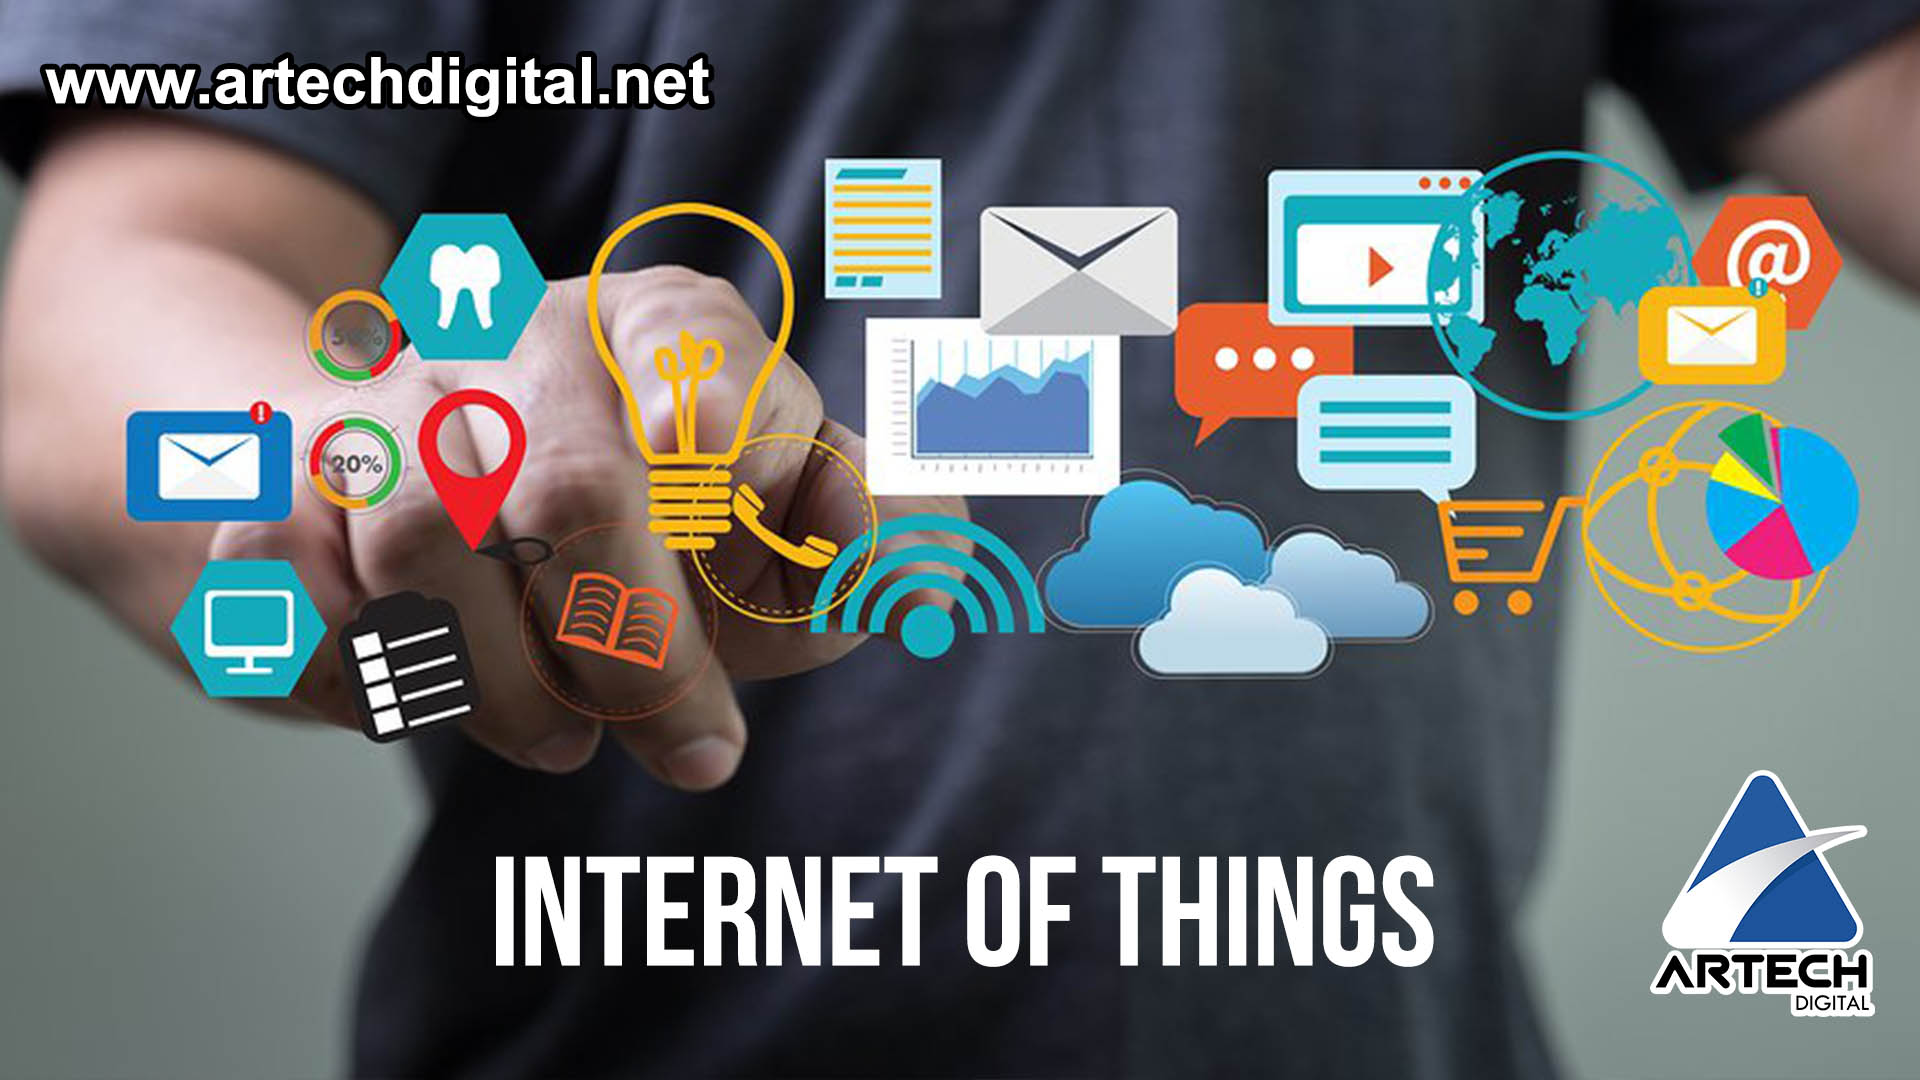 Internet of Things in Digital Marketing - artech digital